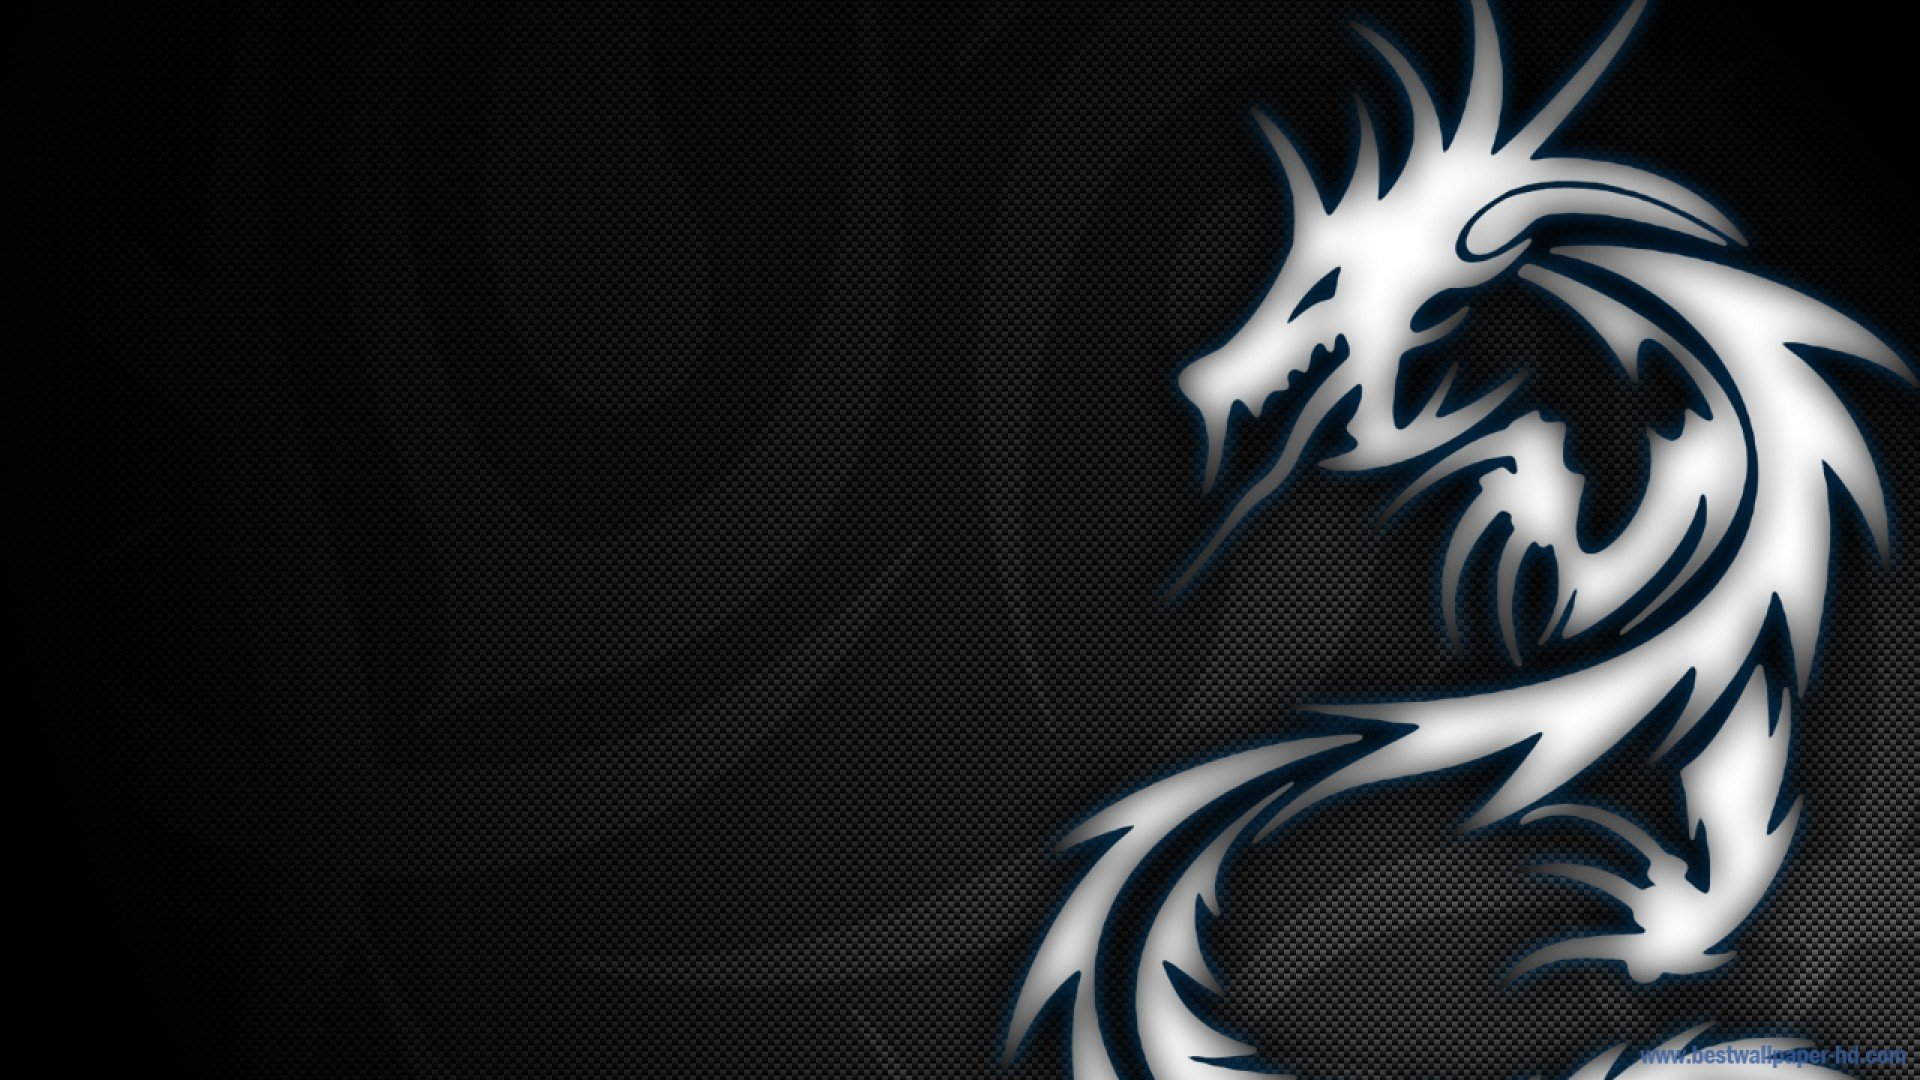 Abstract Dragon wallpaper background 1920x1080